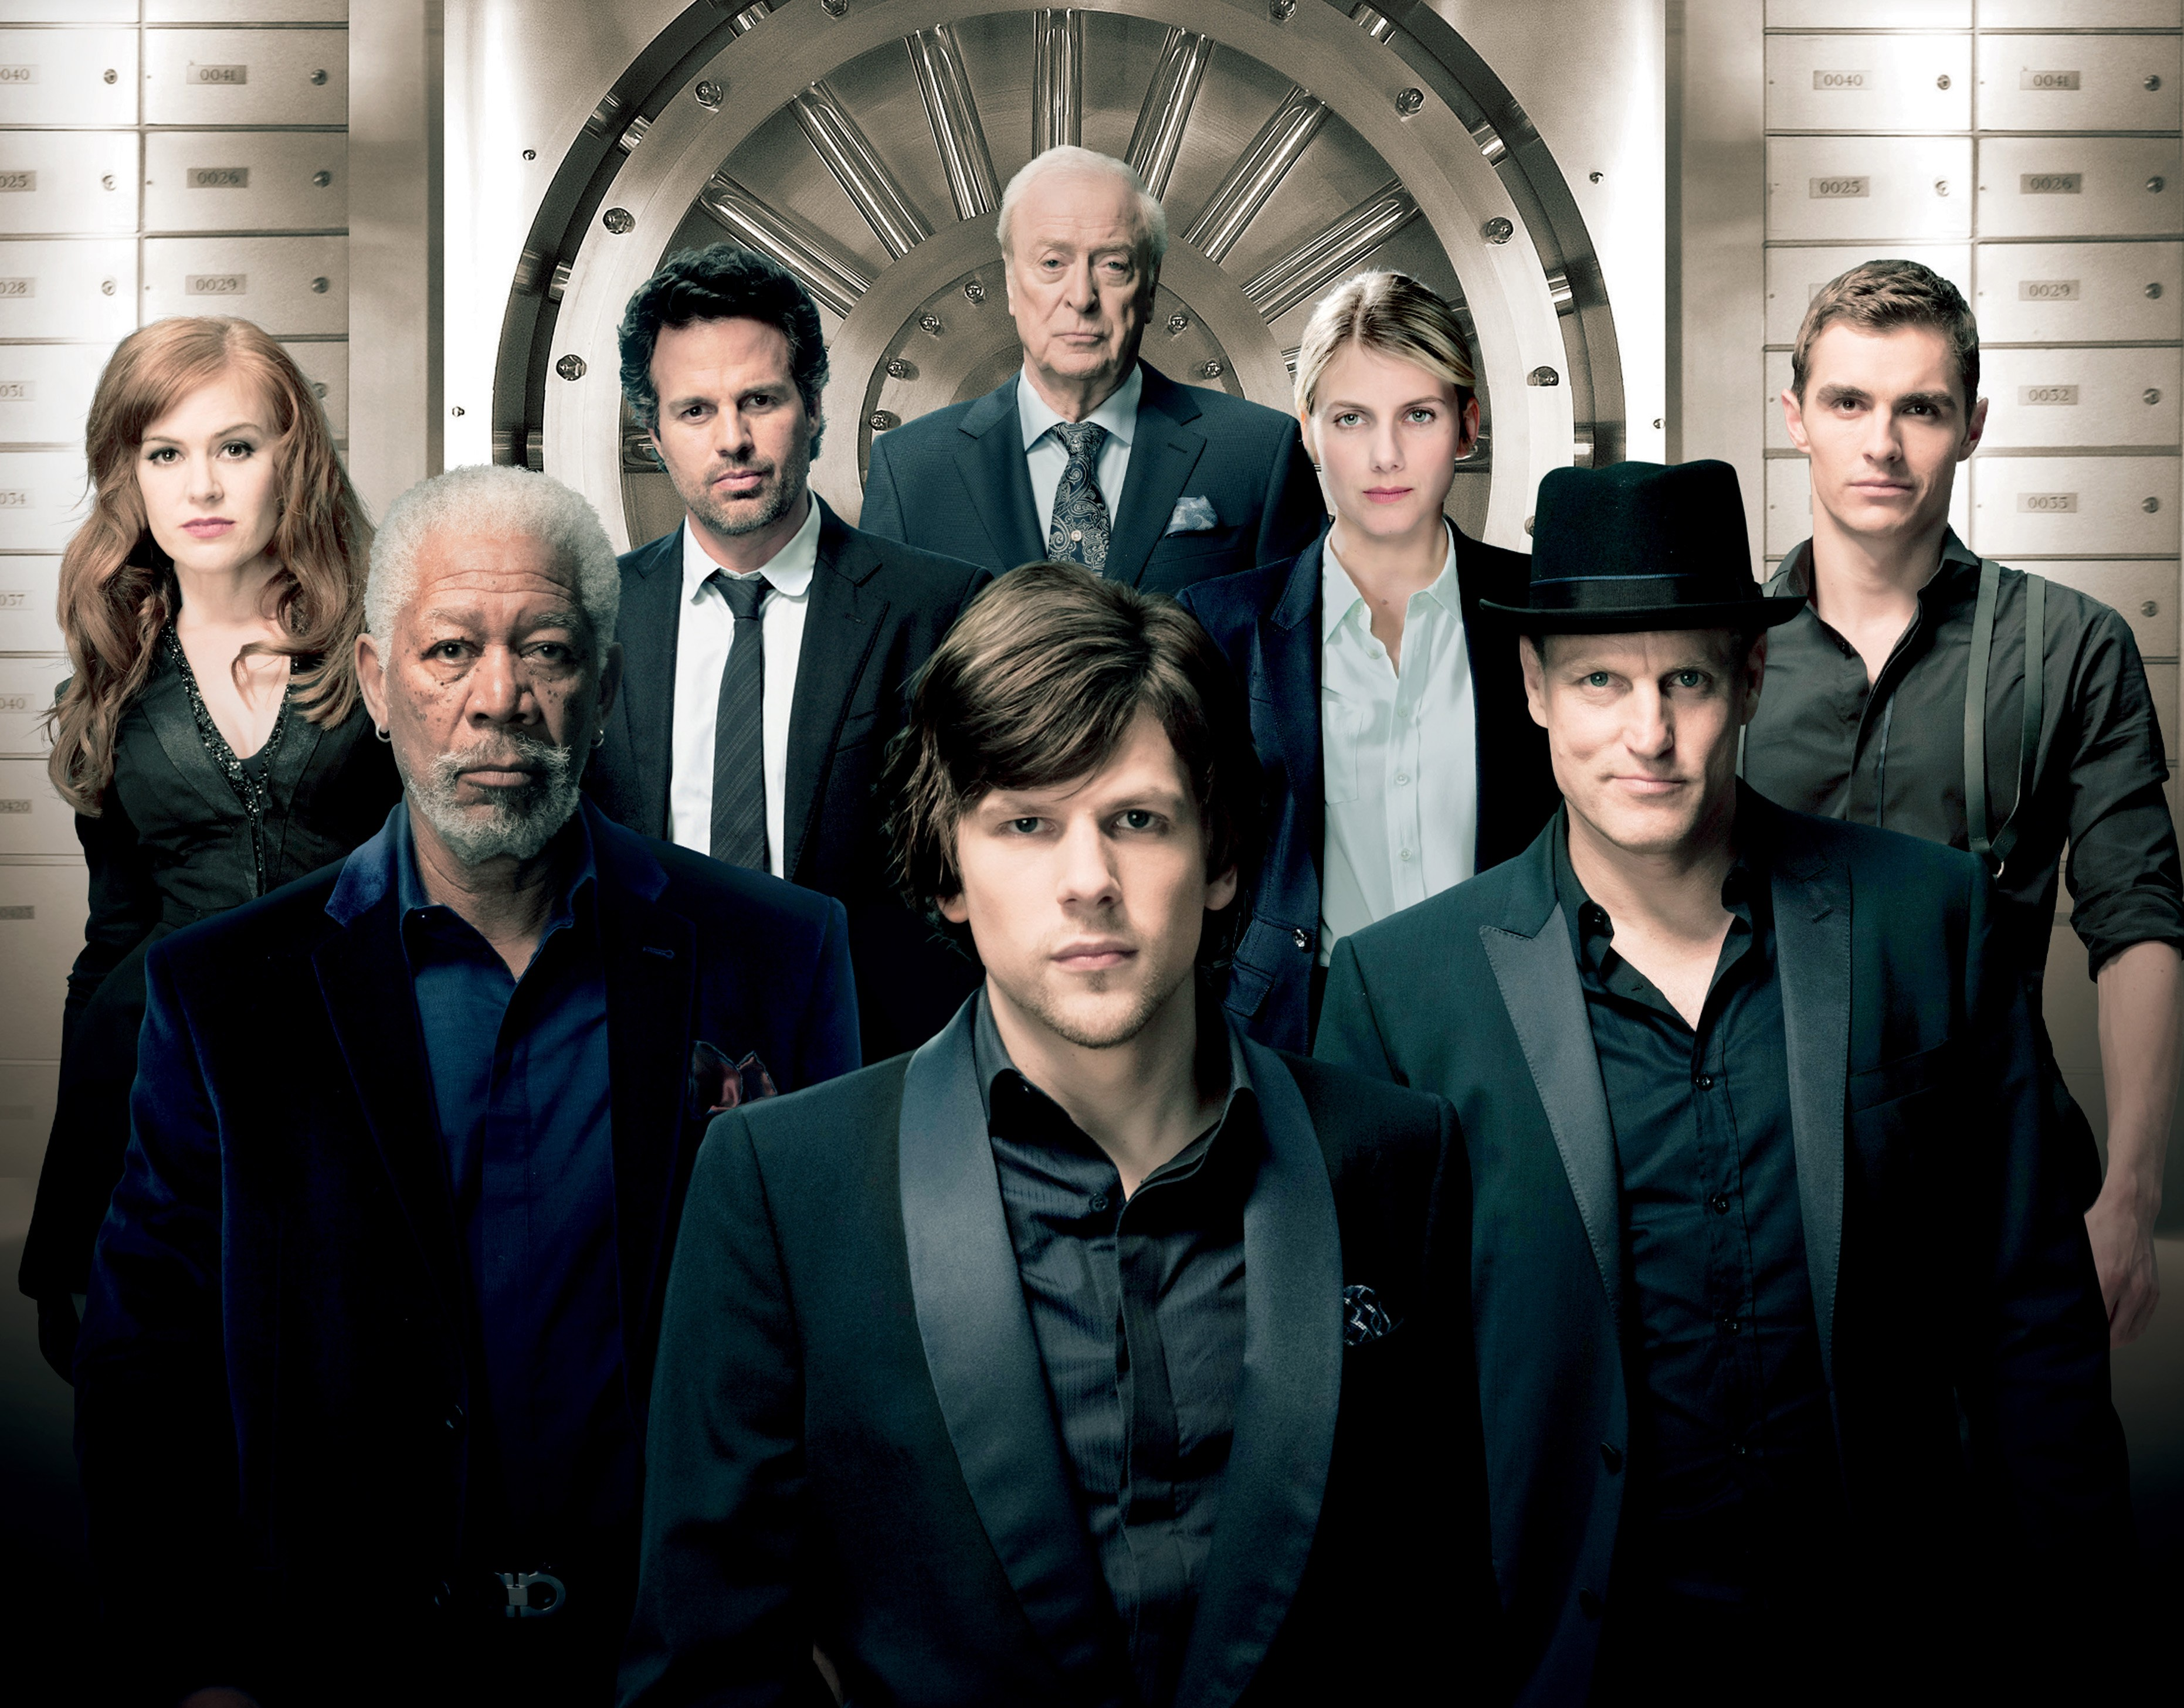 wallpaper now you see me 2, jesse eisenberg, woody harrelson, dave